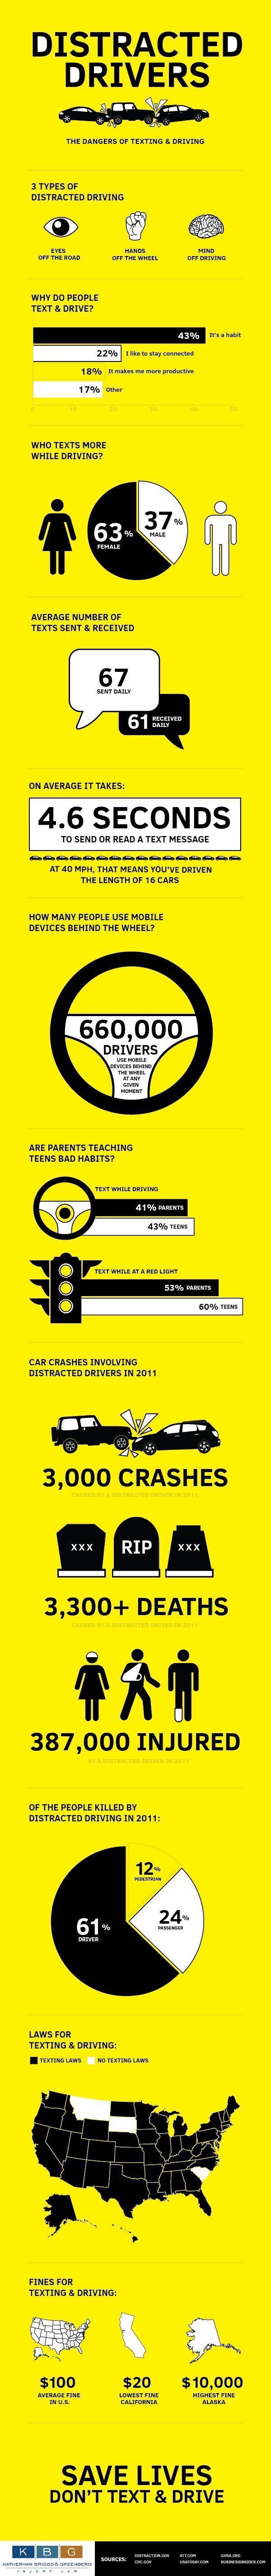 texting-driving-infographic (1)